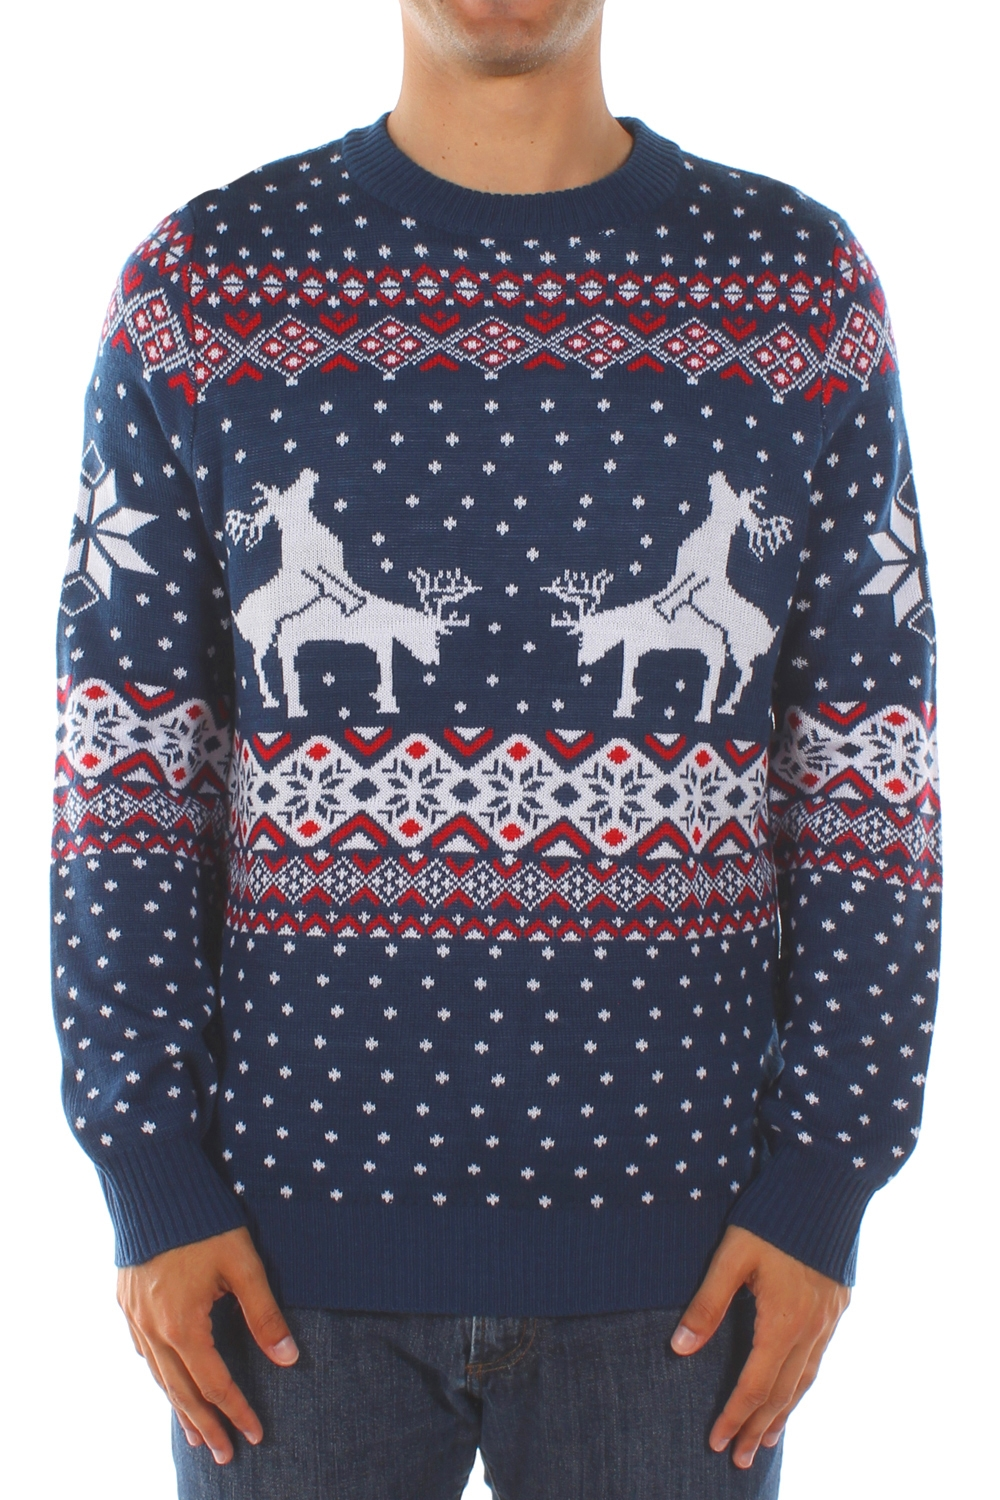 Reindeer Climax Ugly Christmas Sweater